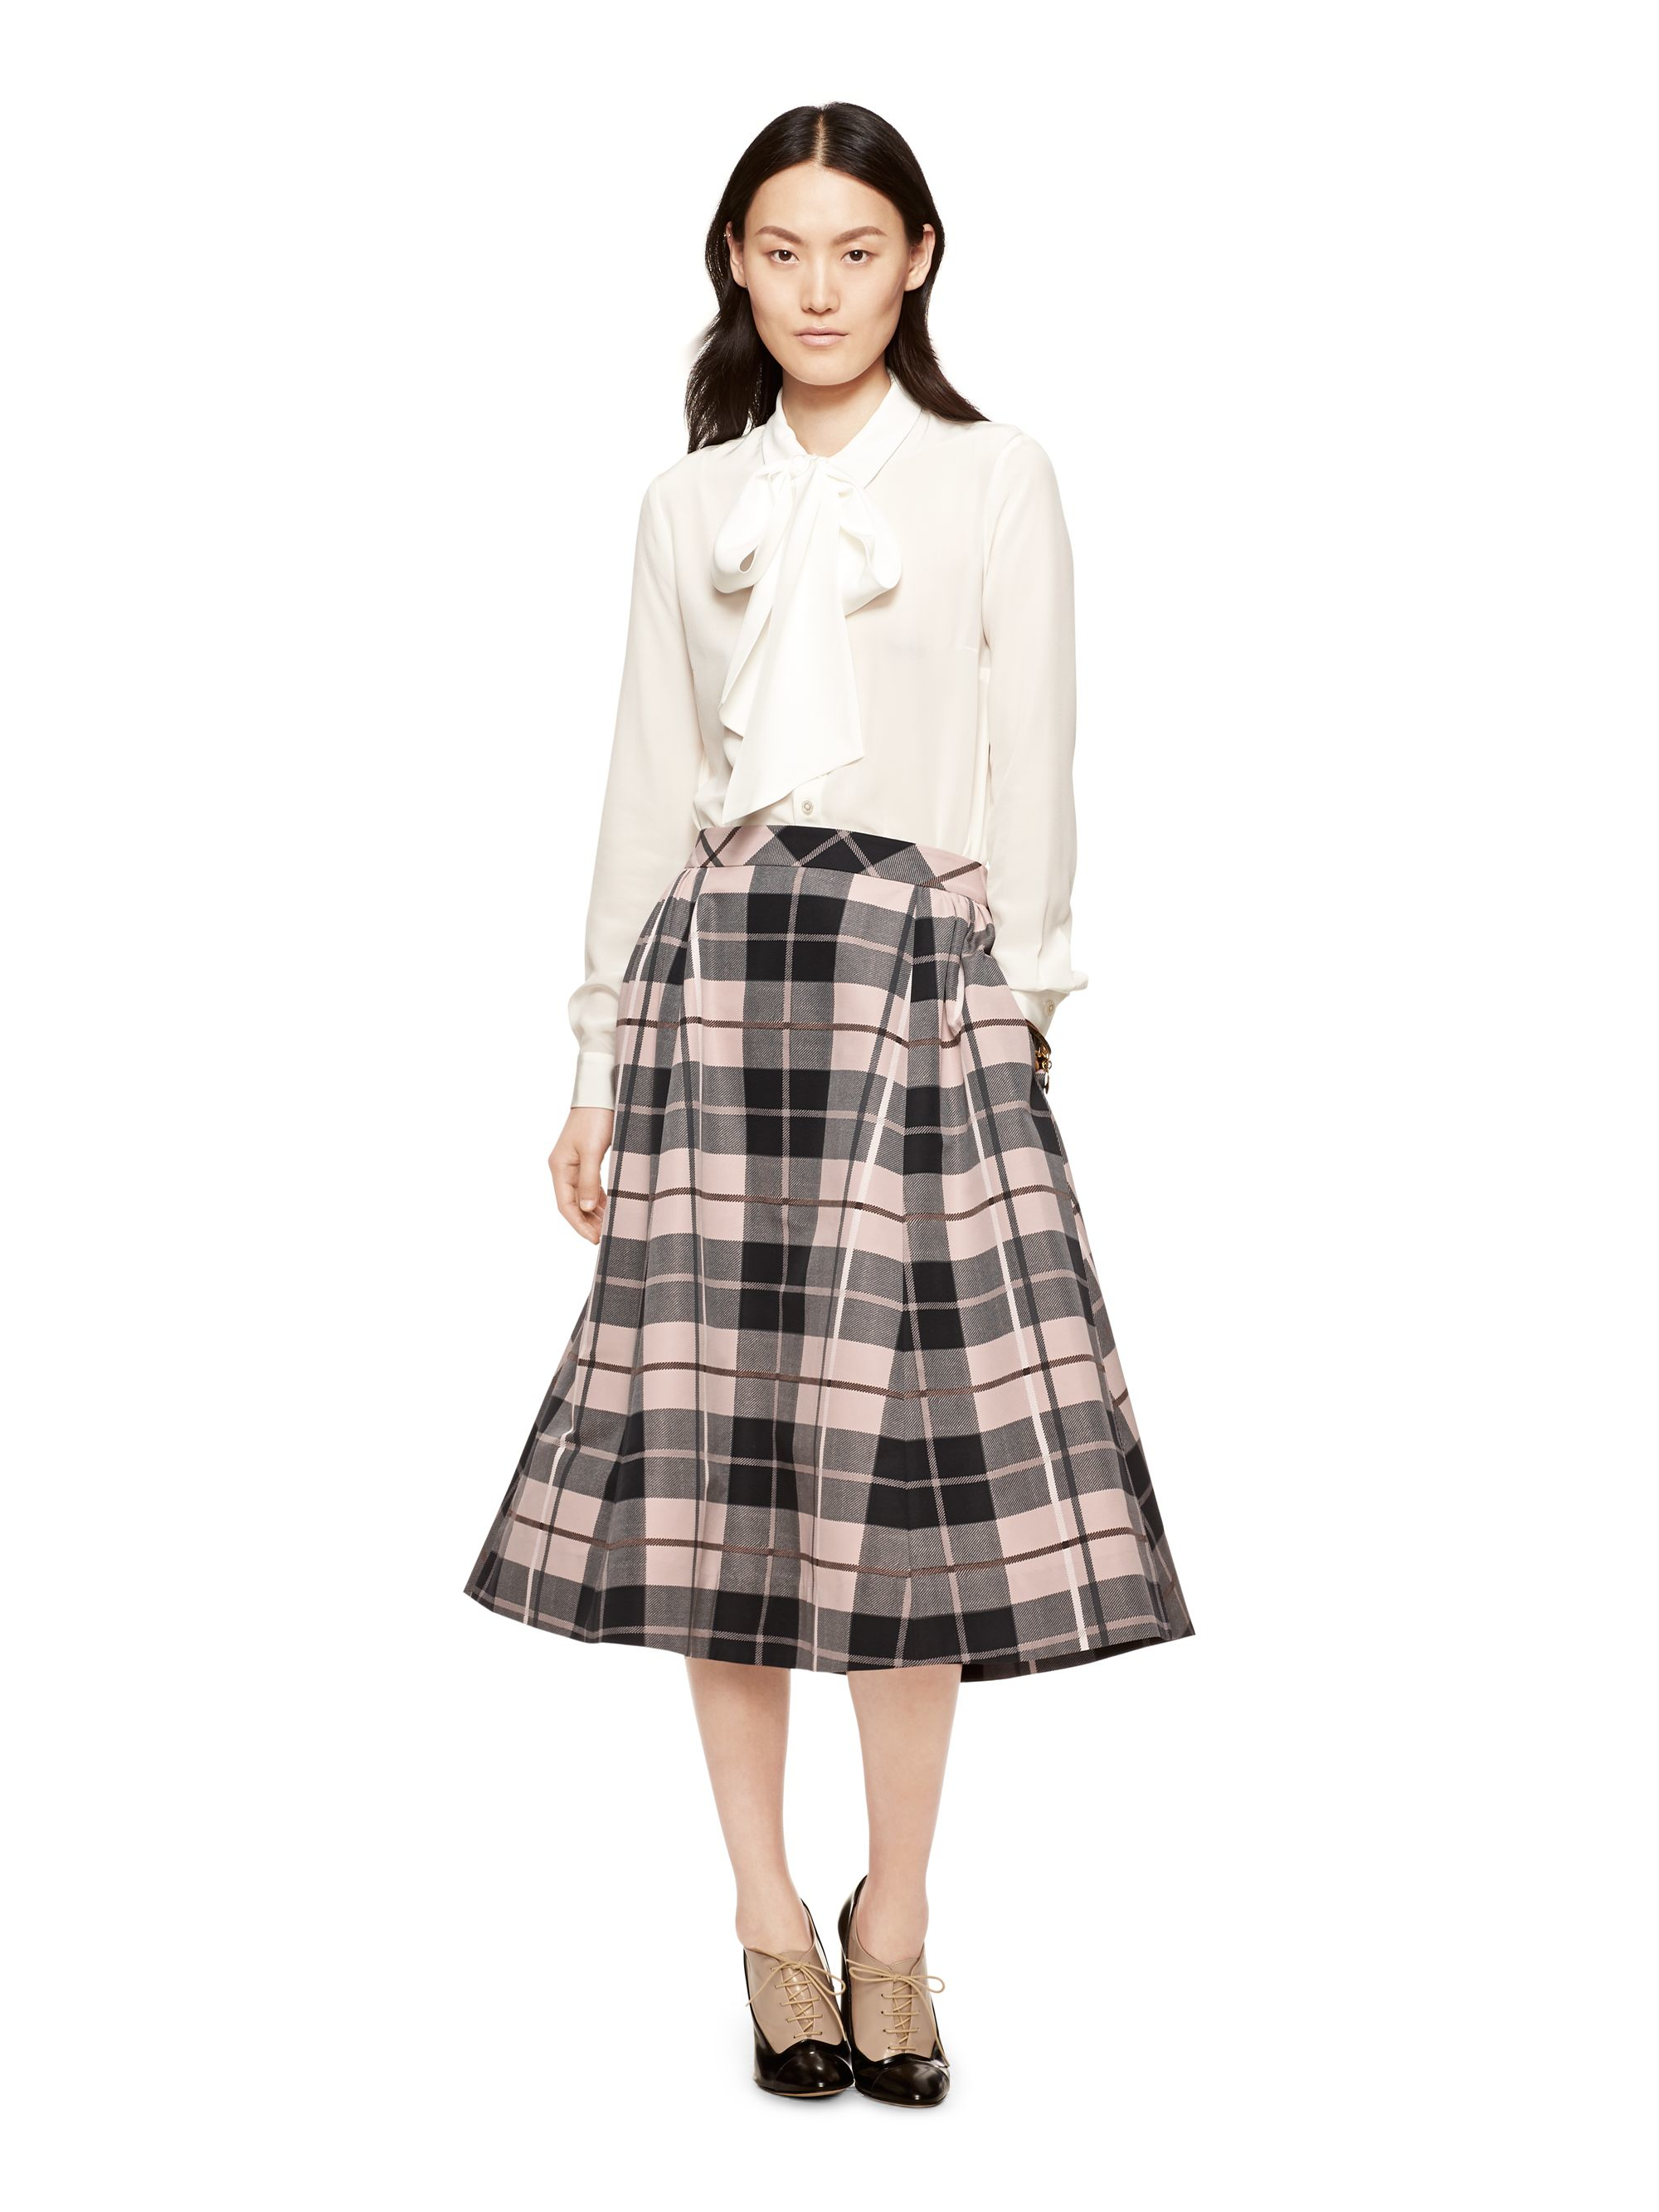 Kate spade new york Woodland Plaid Midi Skirt in Pink | Lyst